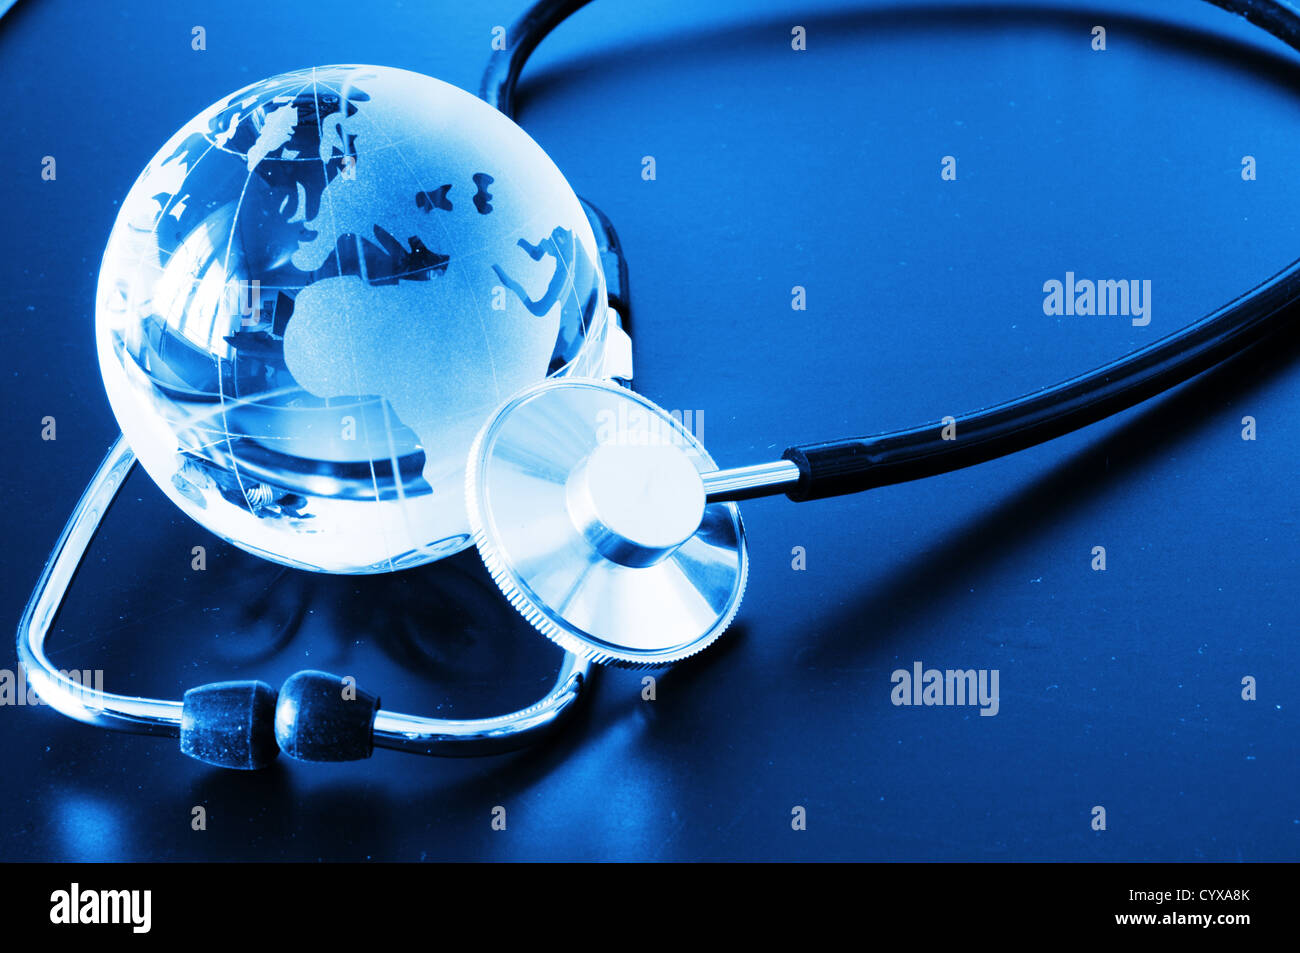 ecology eco environment or global warming concept with glass globe and stethoscope - Stock Image